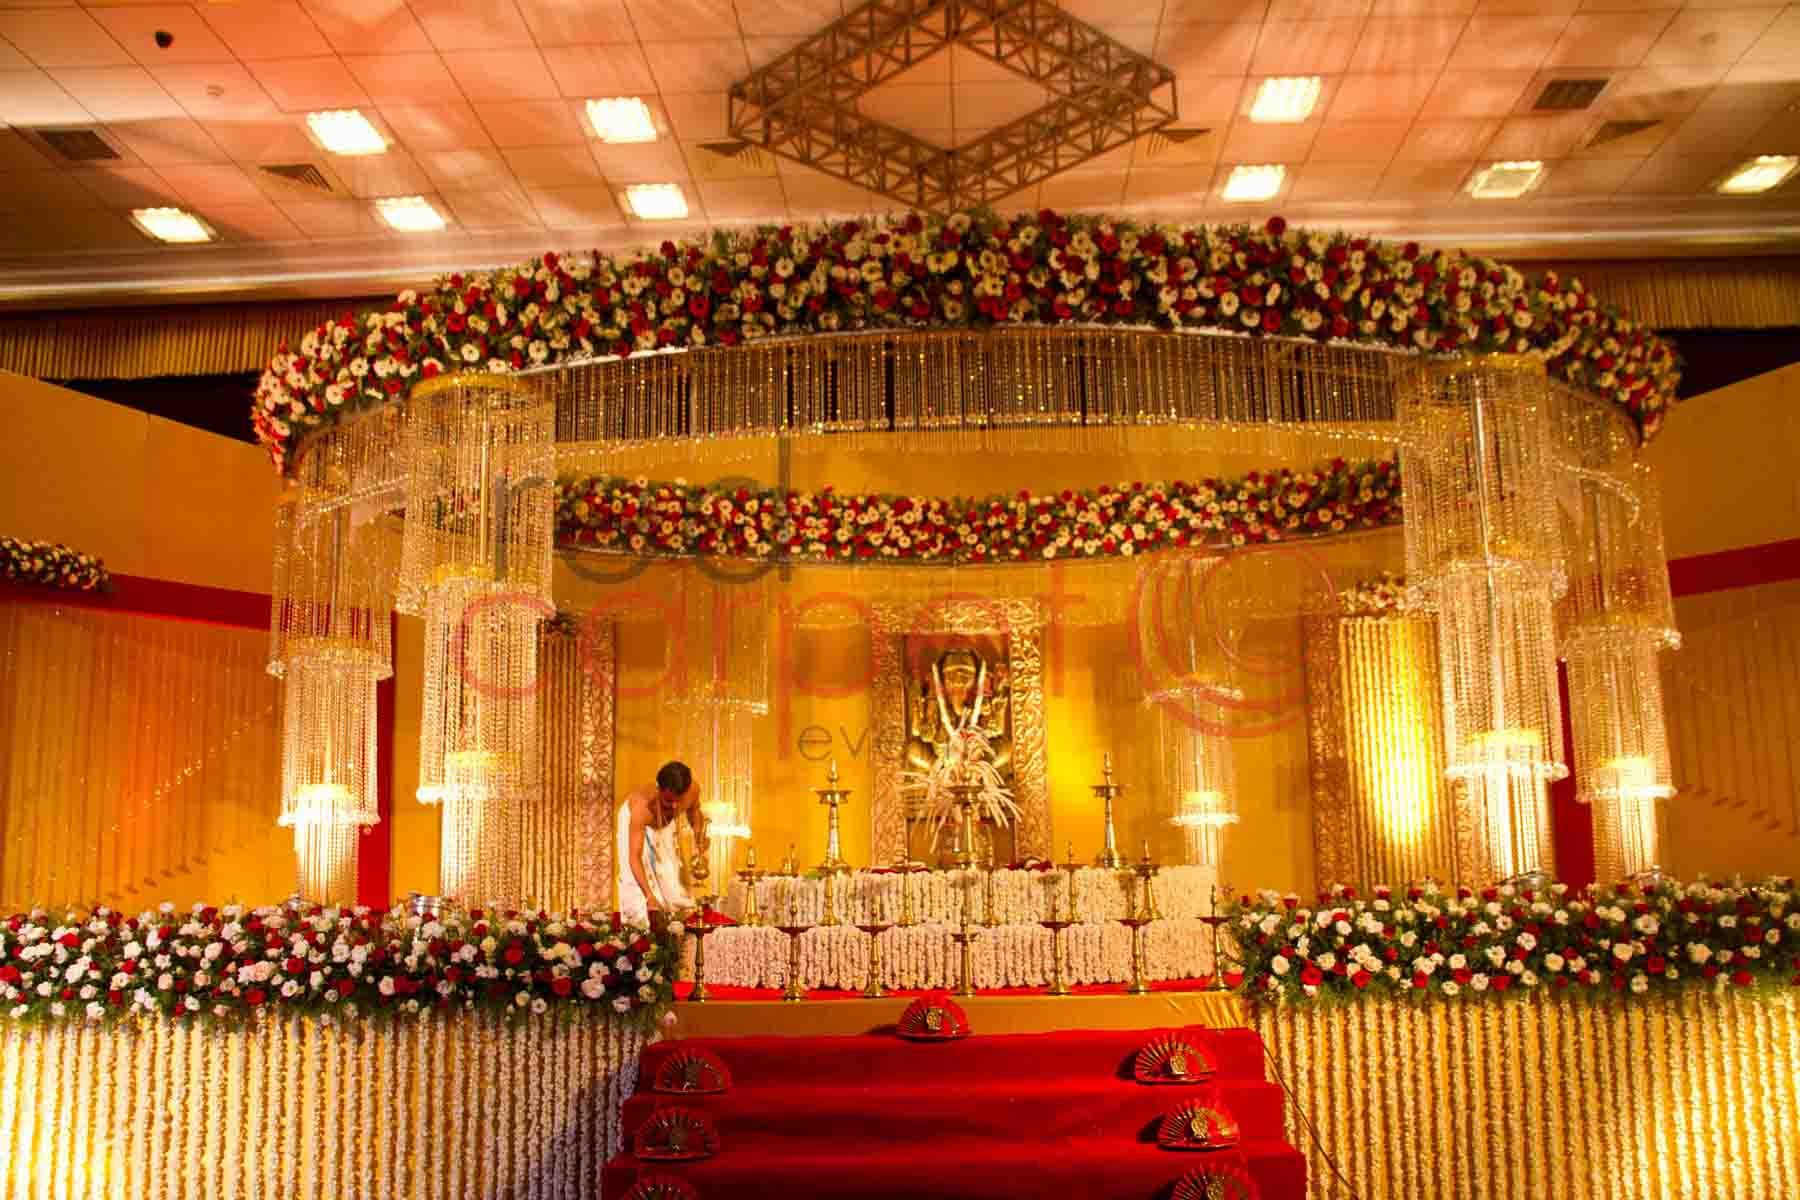 India Wedding Decor Red Carpet Events Wedding Stages